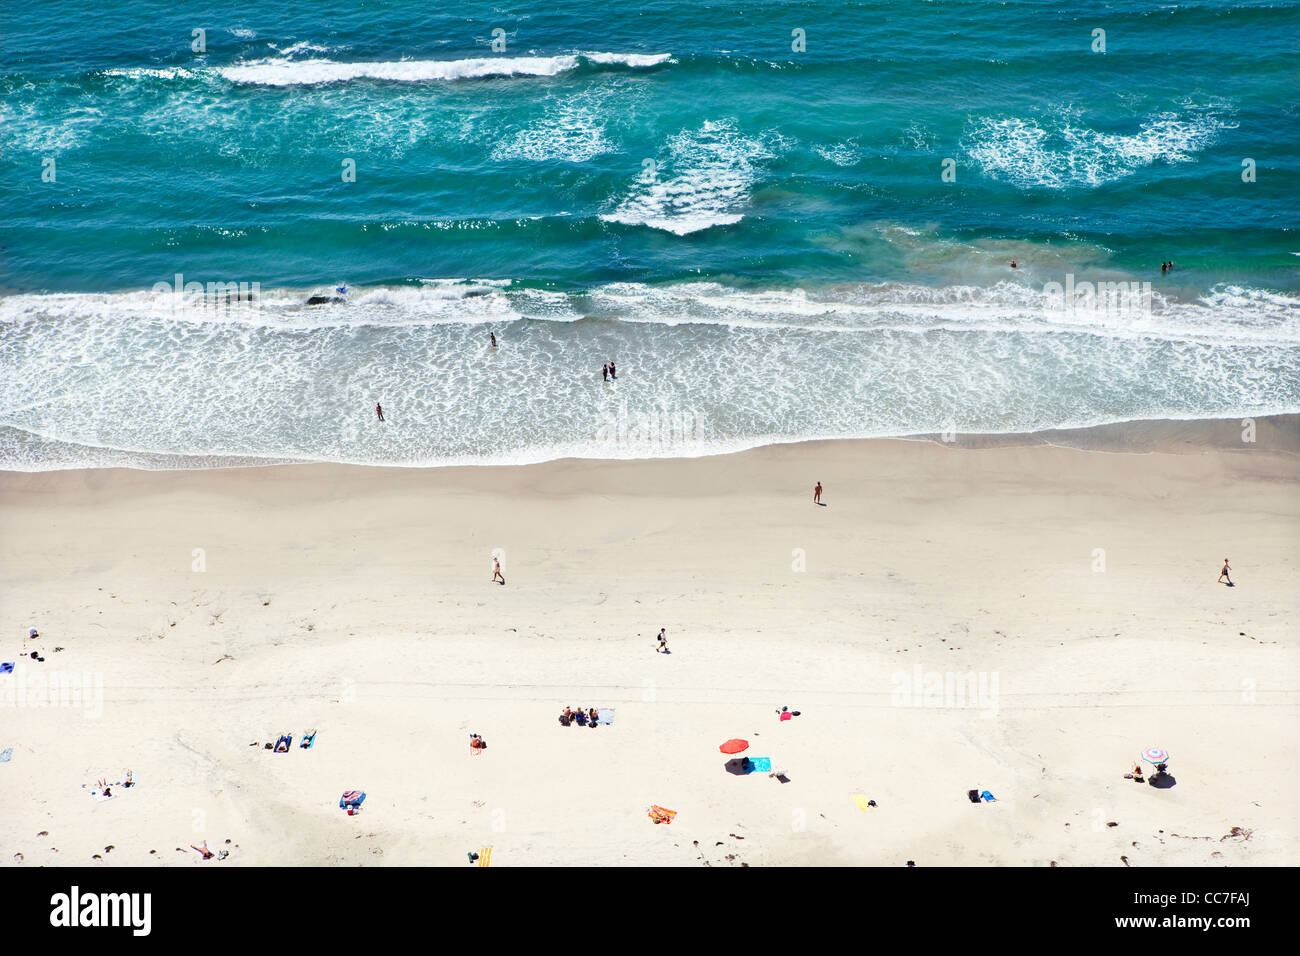 People relaxing on sunny beach Banque D'Images